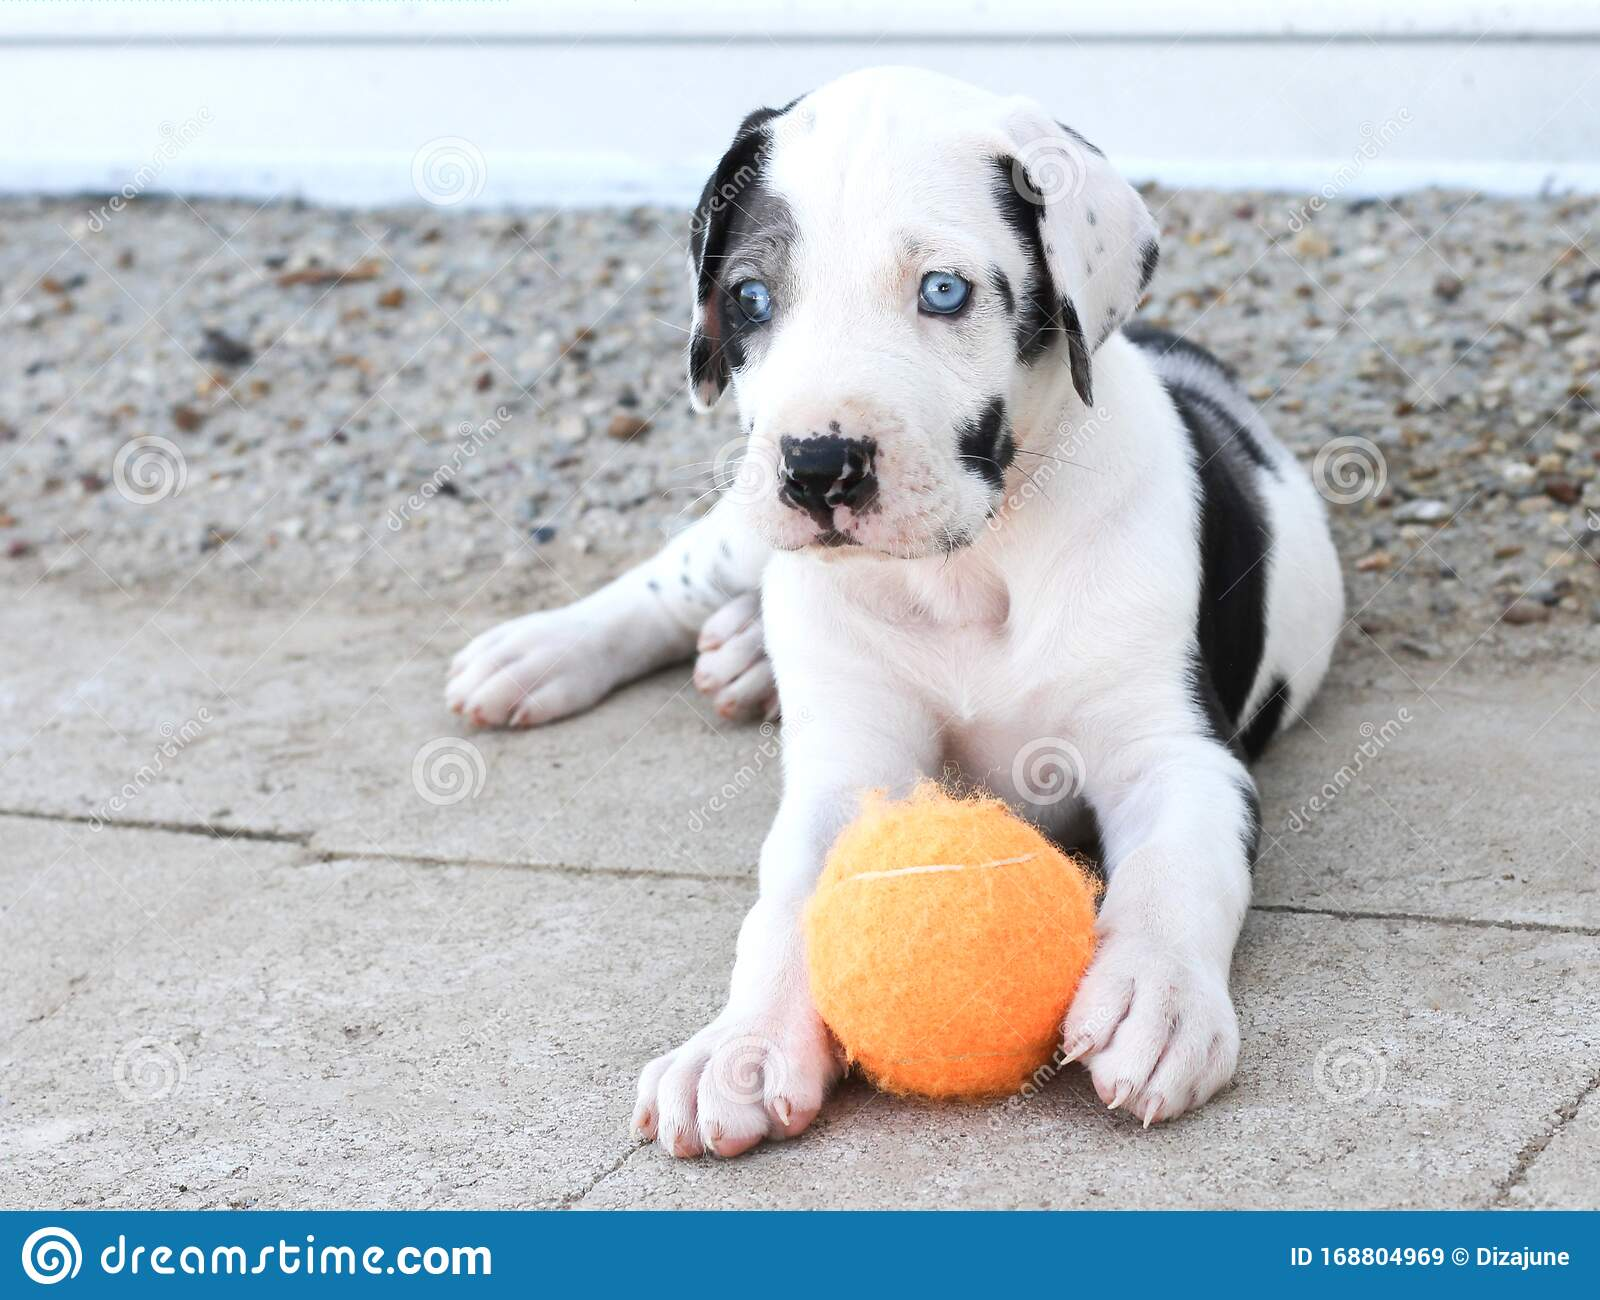 1 935 Great Dane Puppy Photos Free Royalty Free Stock Photos From Dreamstime